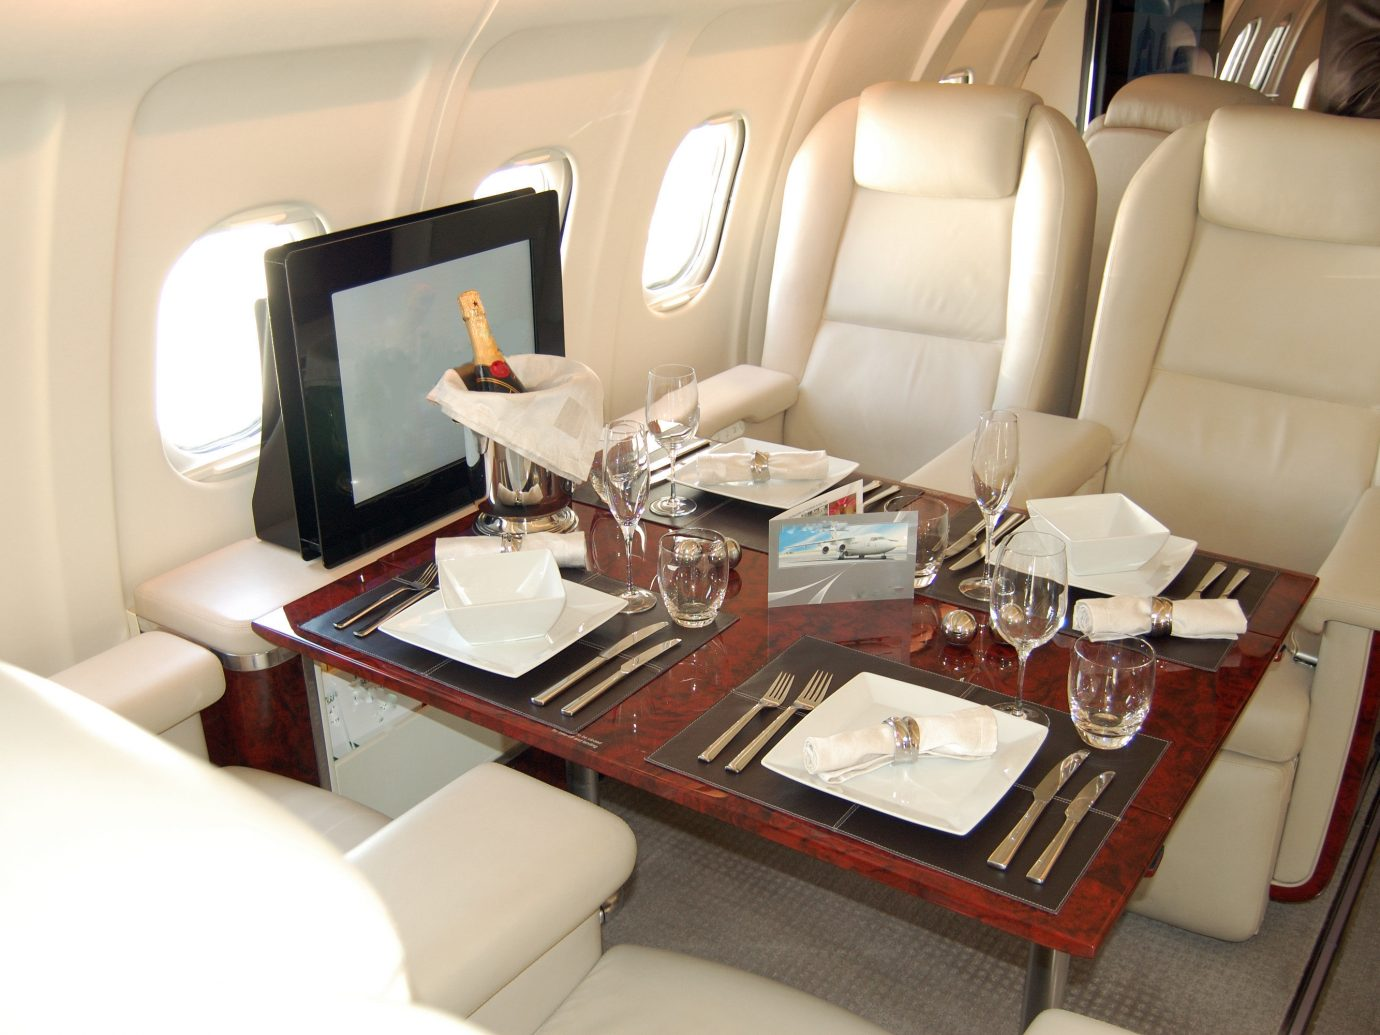 Flights Travel Tips indoor floor vehicle room Boat Cabin airline yacht Living passenger ship luxury yacht luxury vehicle interior design seat furniture